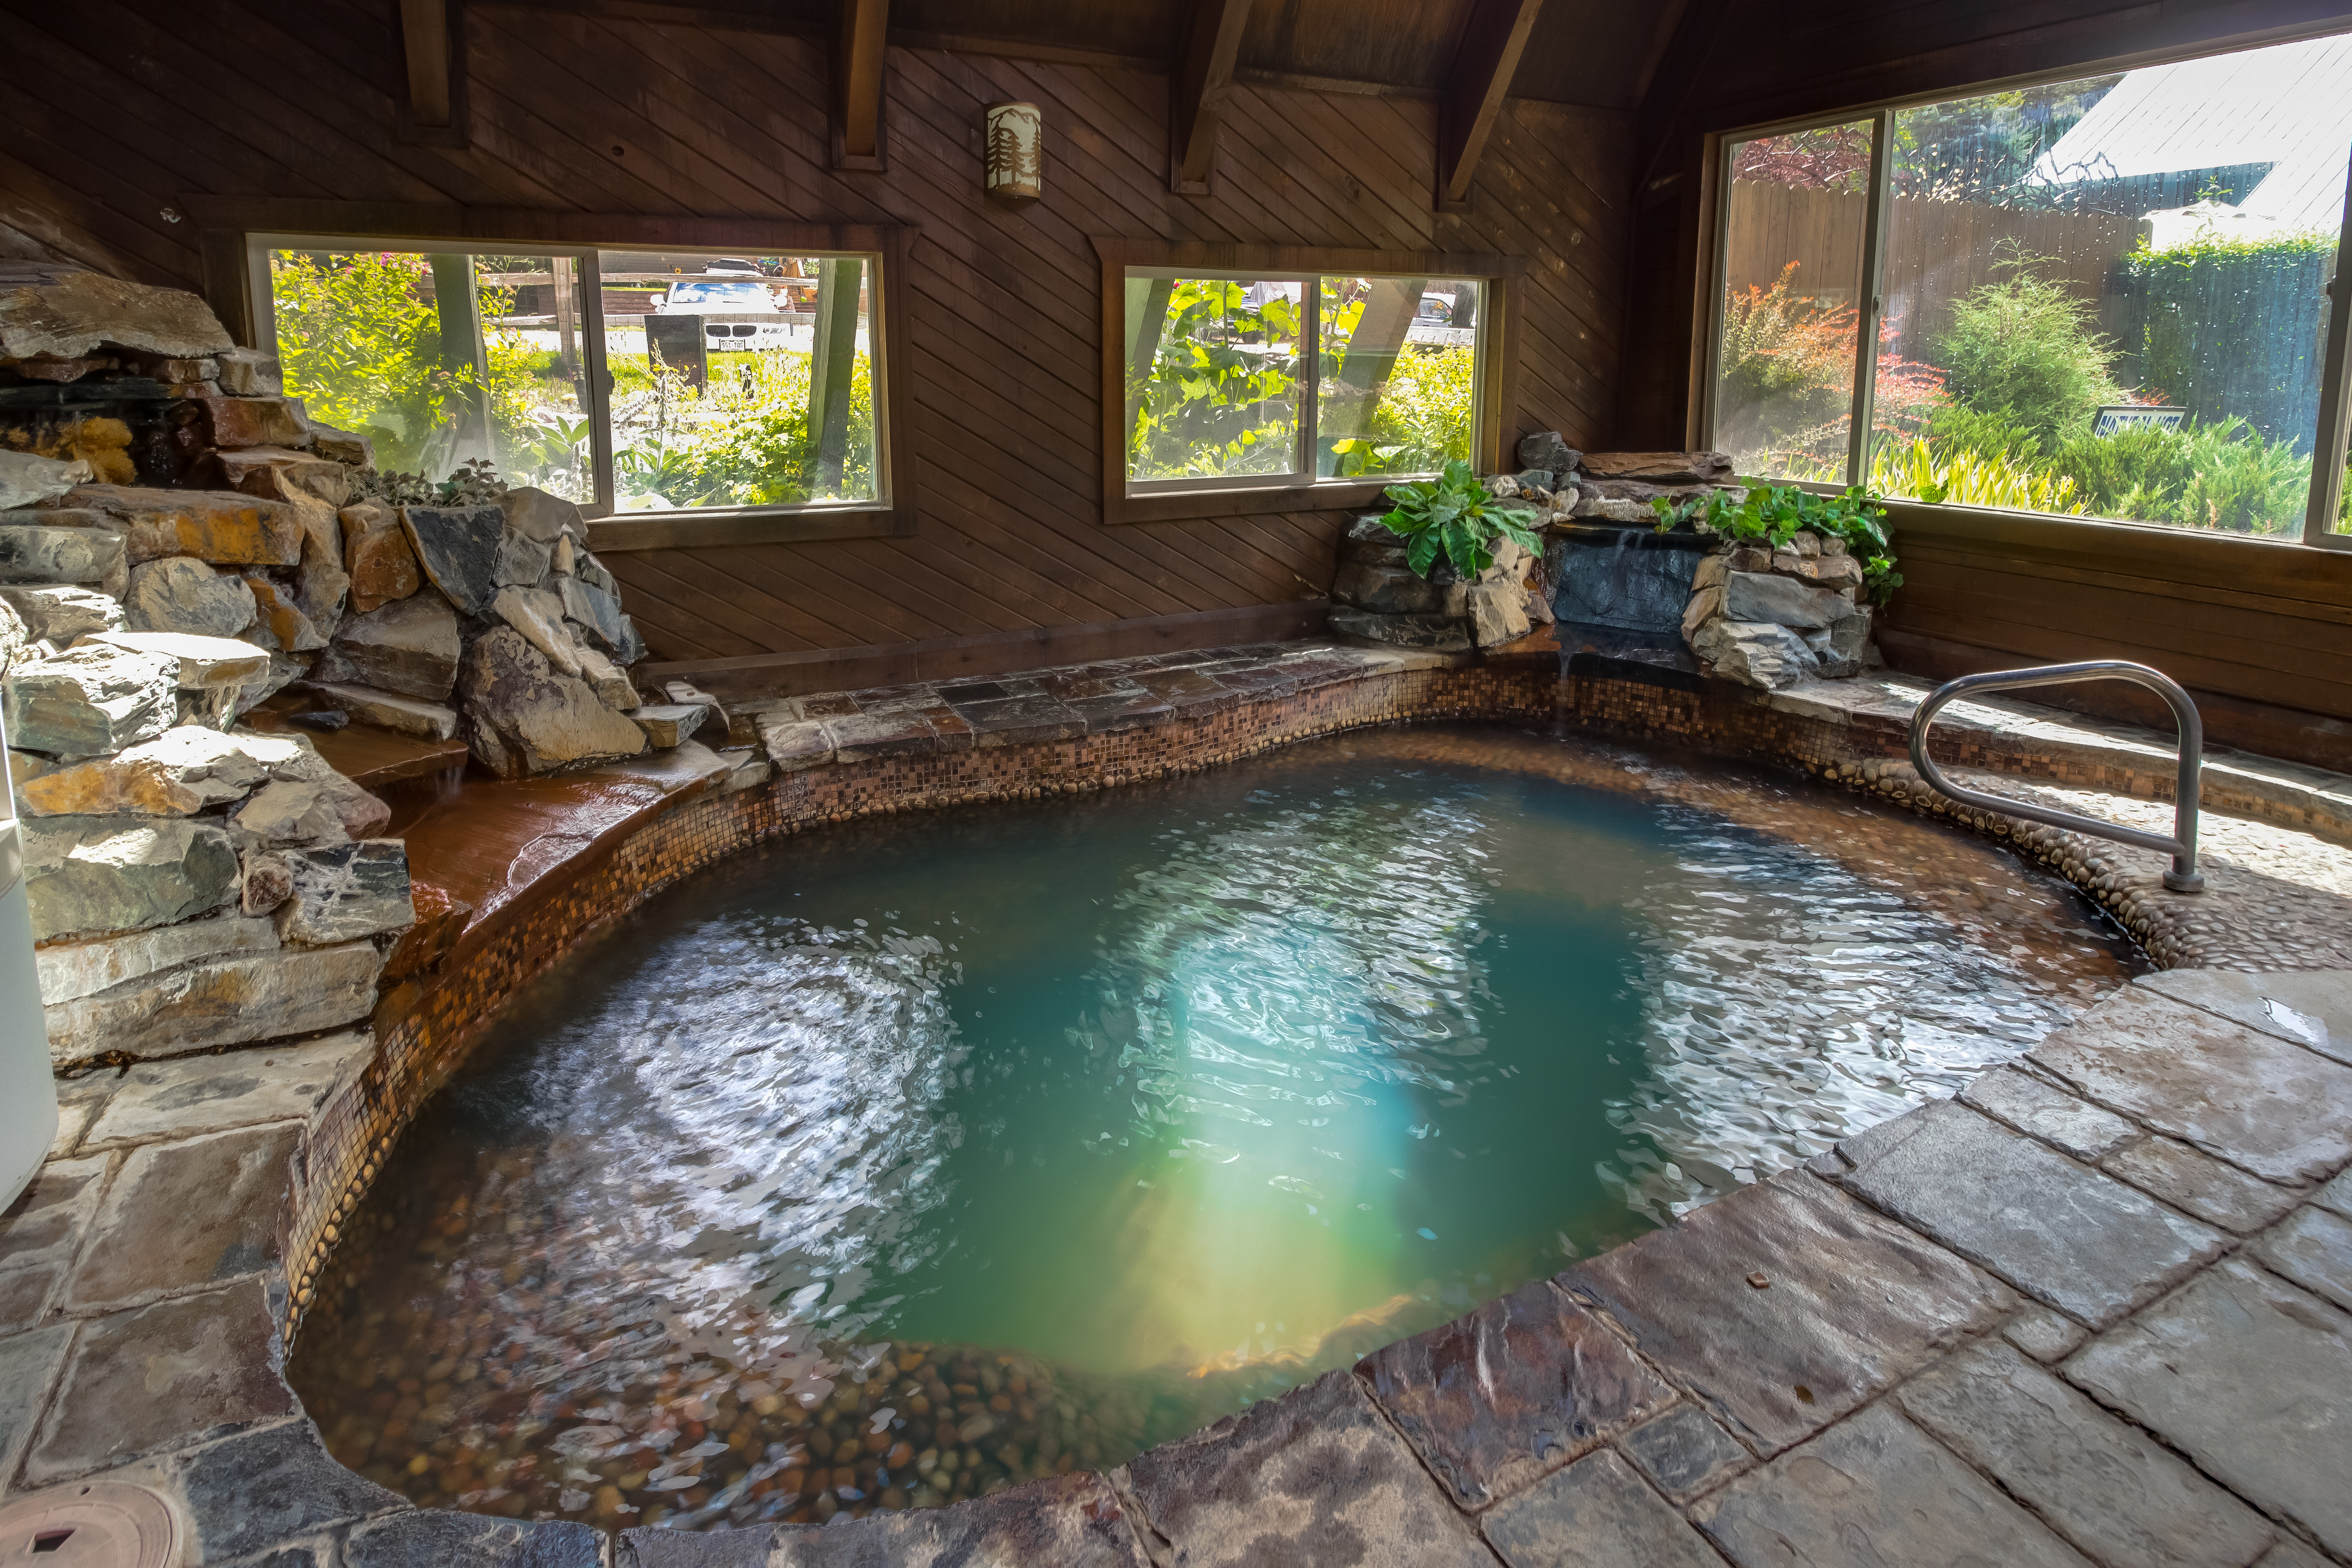 Image of hot springs resort in Ouray